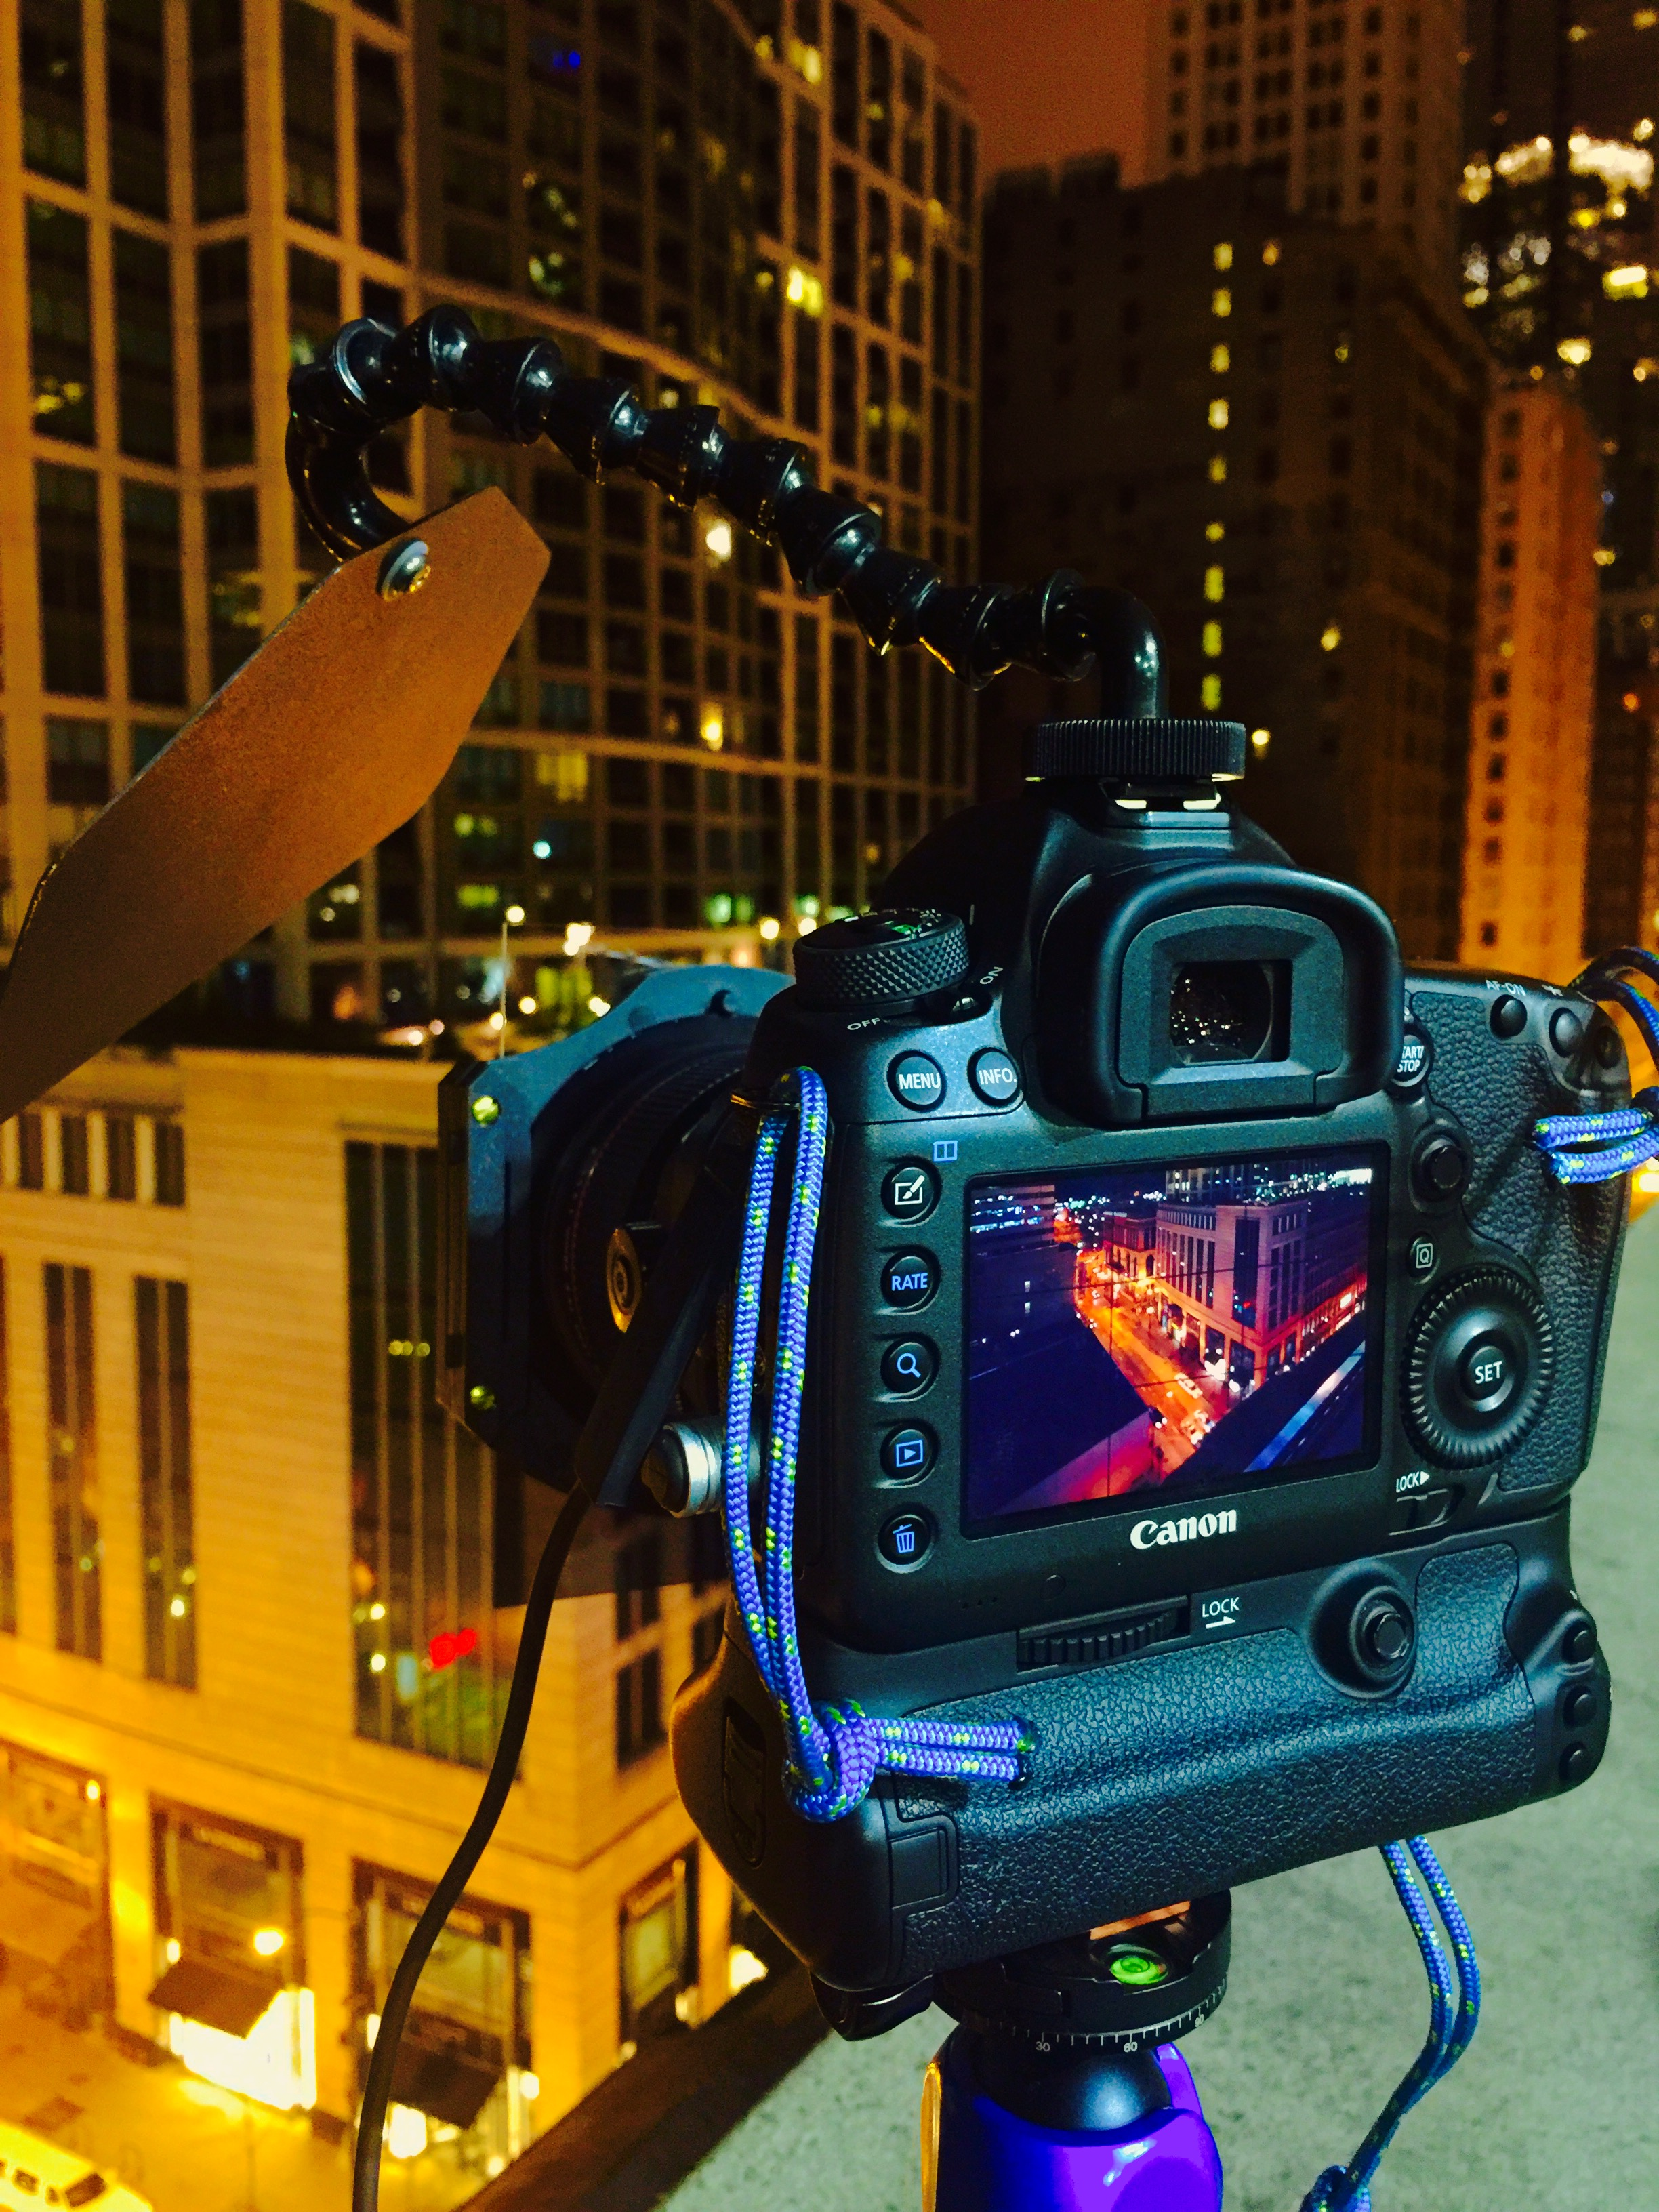 Camera Best Dslr Camera For Night Photography the best lightweight mobile lens shade for dslr and video cameras compact marcus bowen chicago night shoot